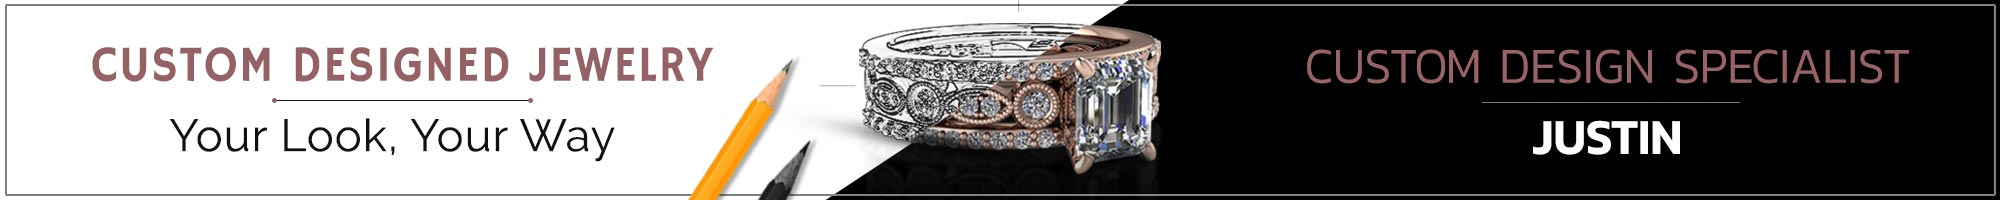 Custom Design Jewellery at Master Jewellers